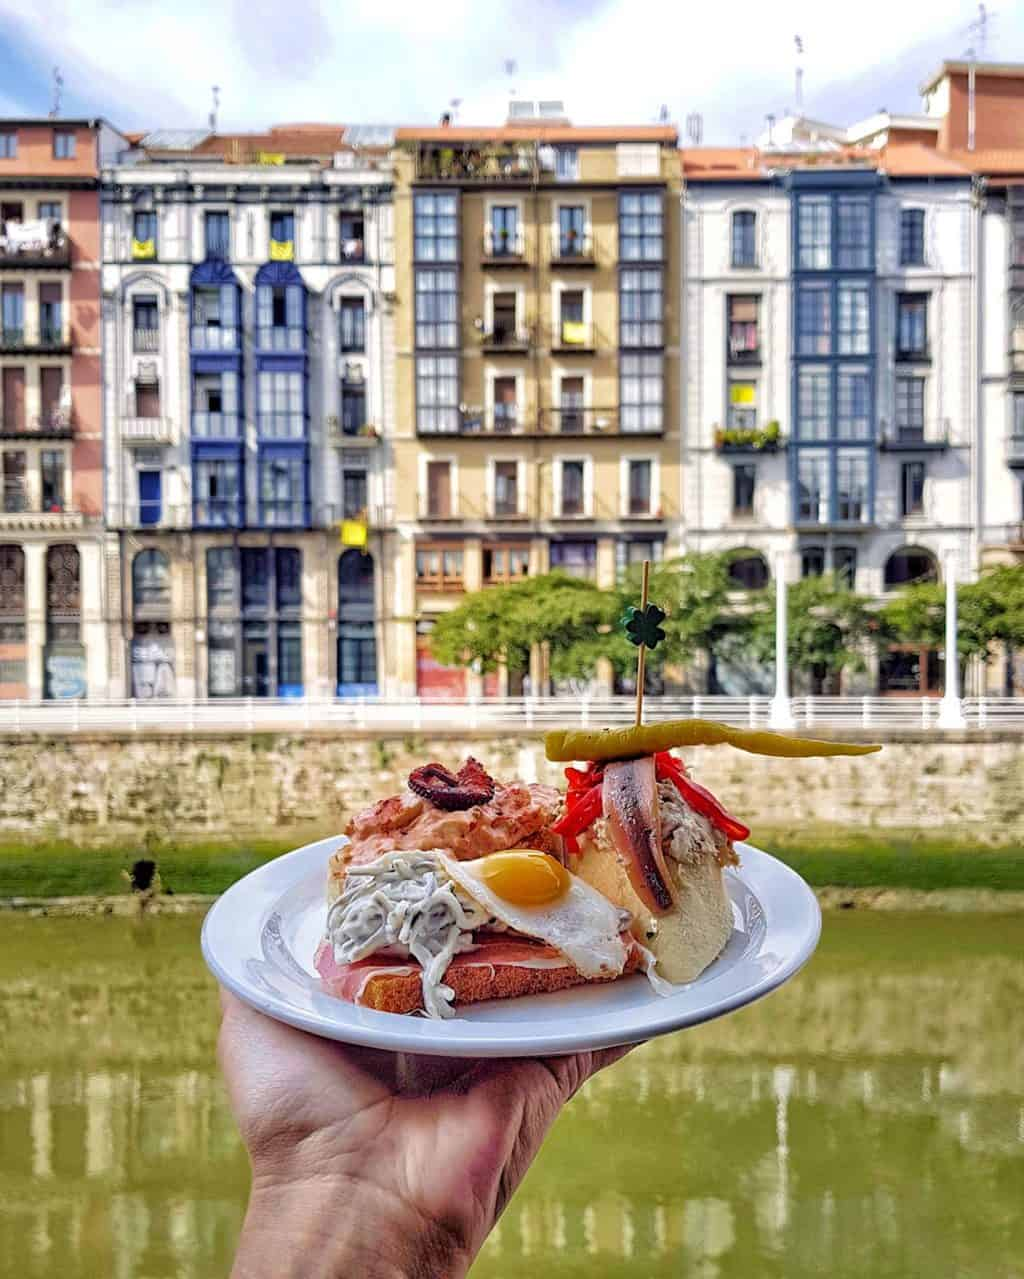 tapas in Logrono in Spain - 7 things you must do in Bilbao and La Rioja